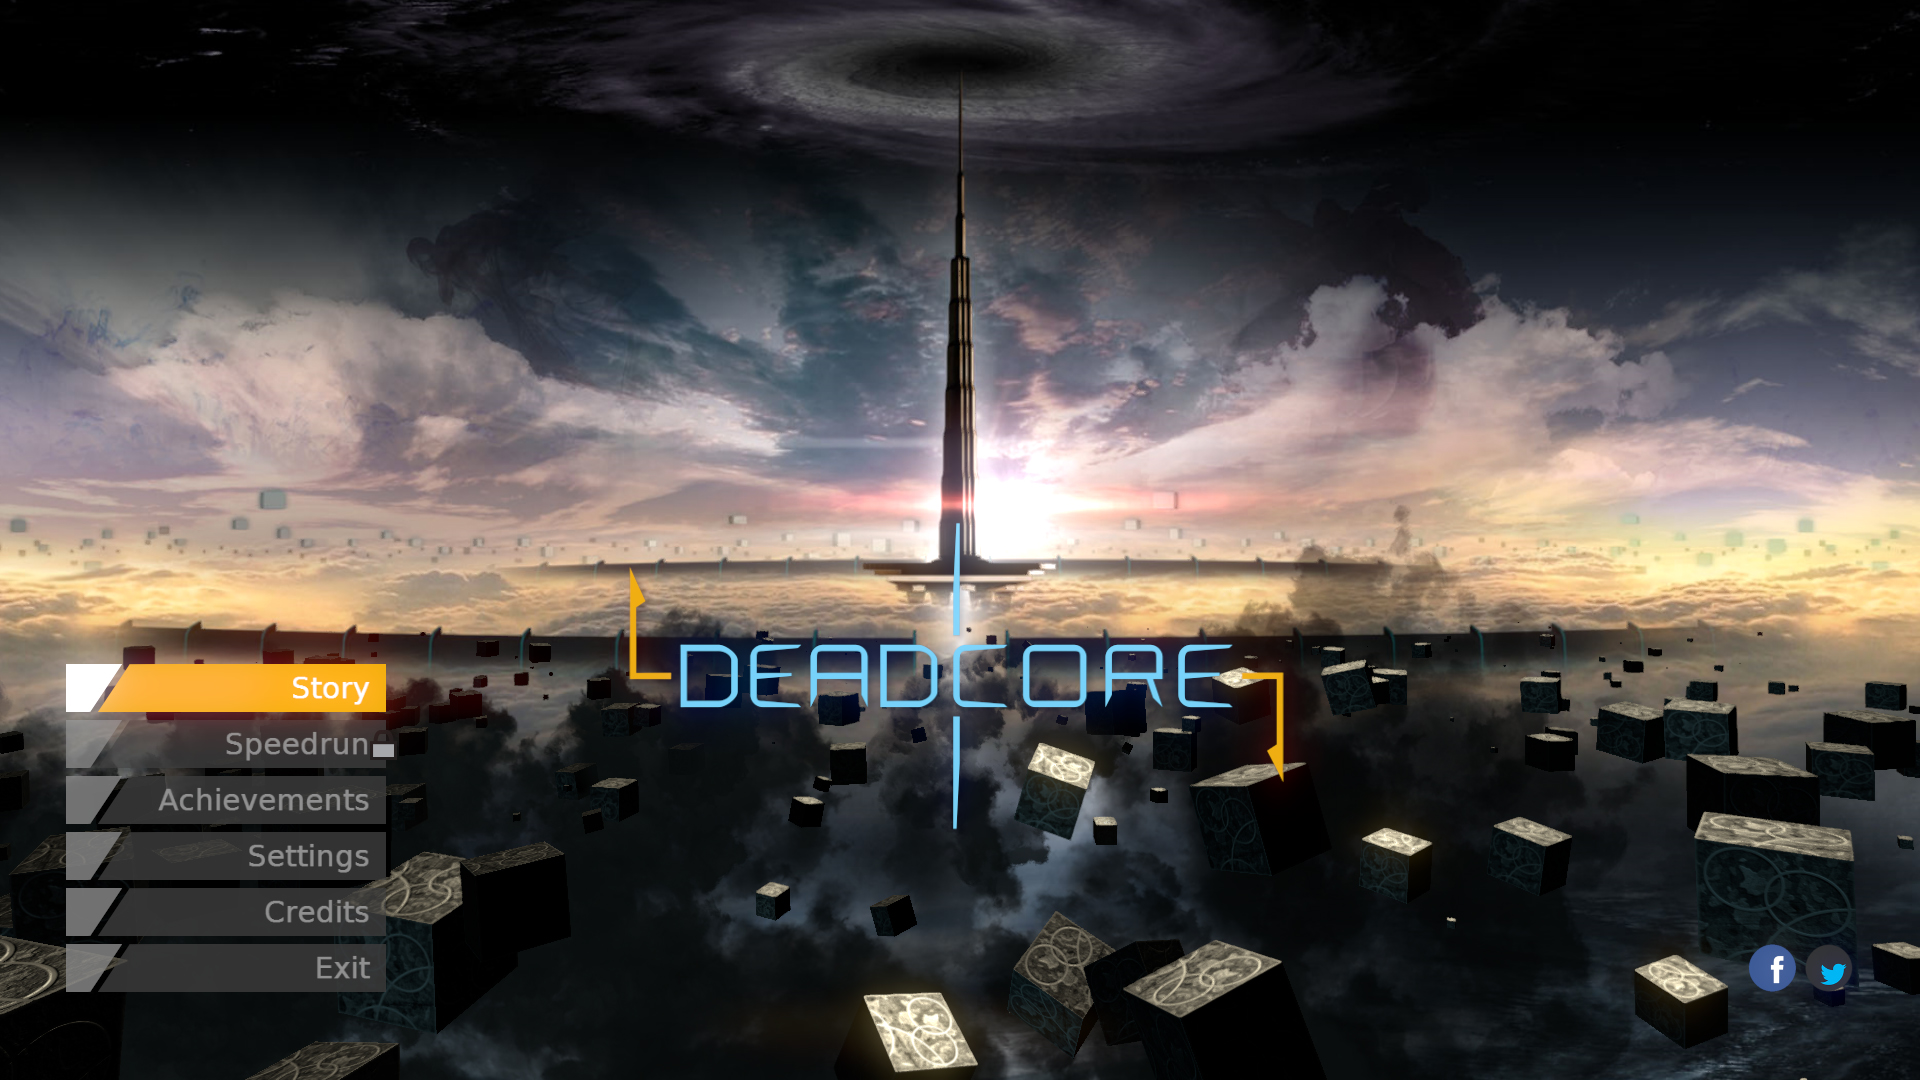 DeadCore screenshot3 on PCGamesCDN you can download cracked unlocked full pc version game direct free download with mirrors and torrent.